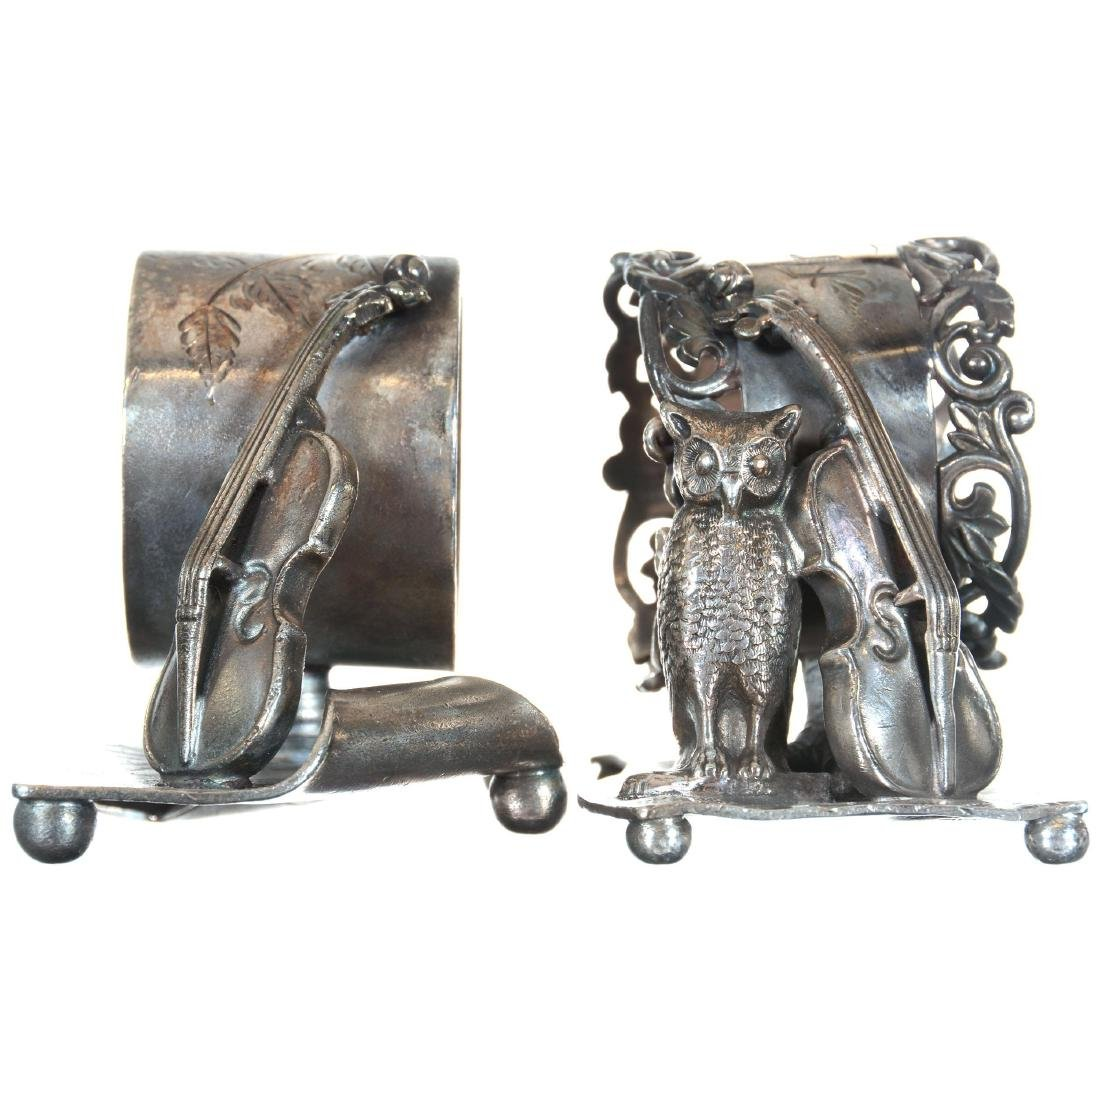 Two Figural Silver-plate Napkin Rings